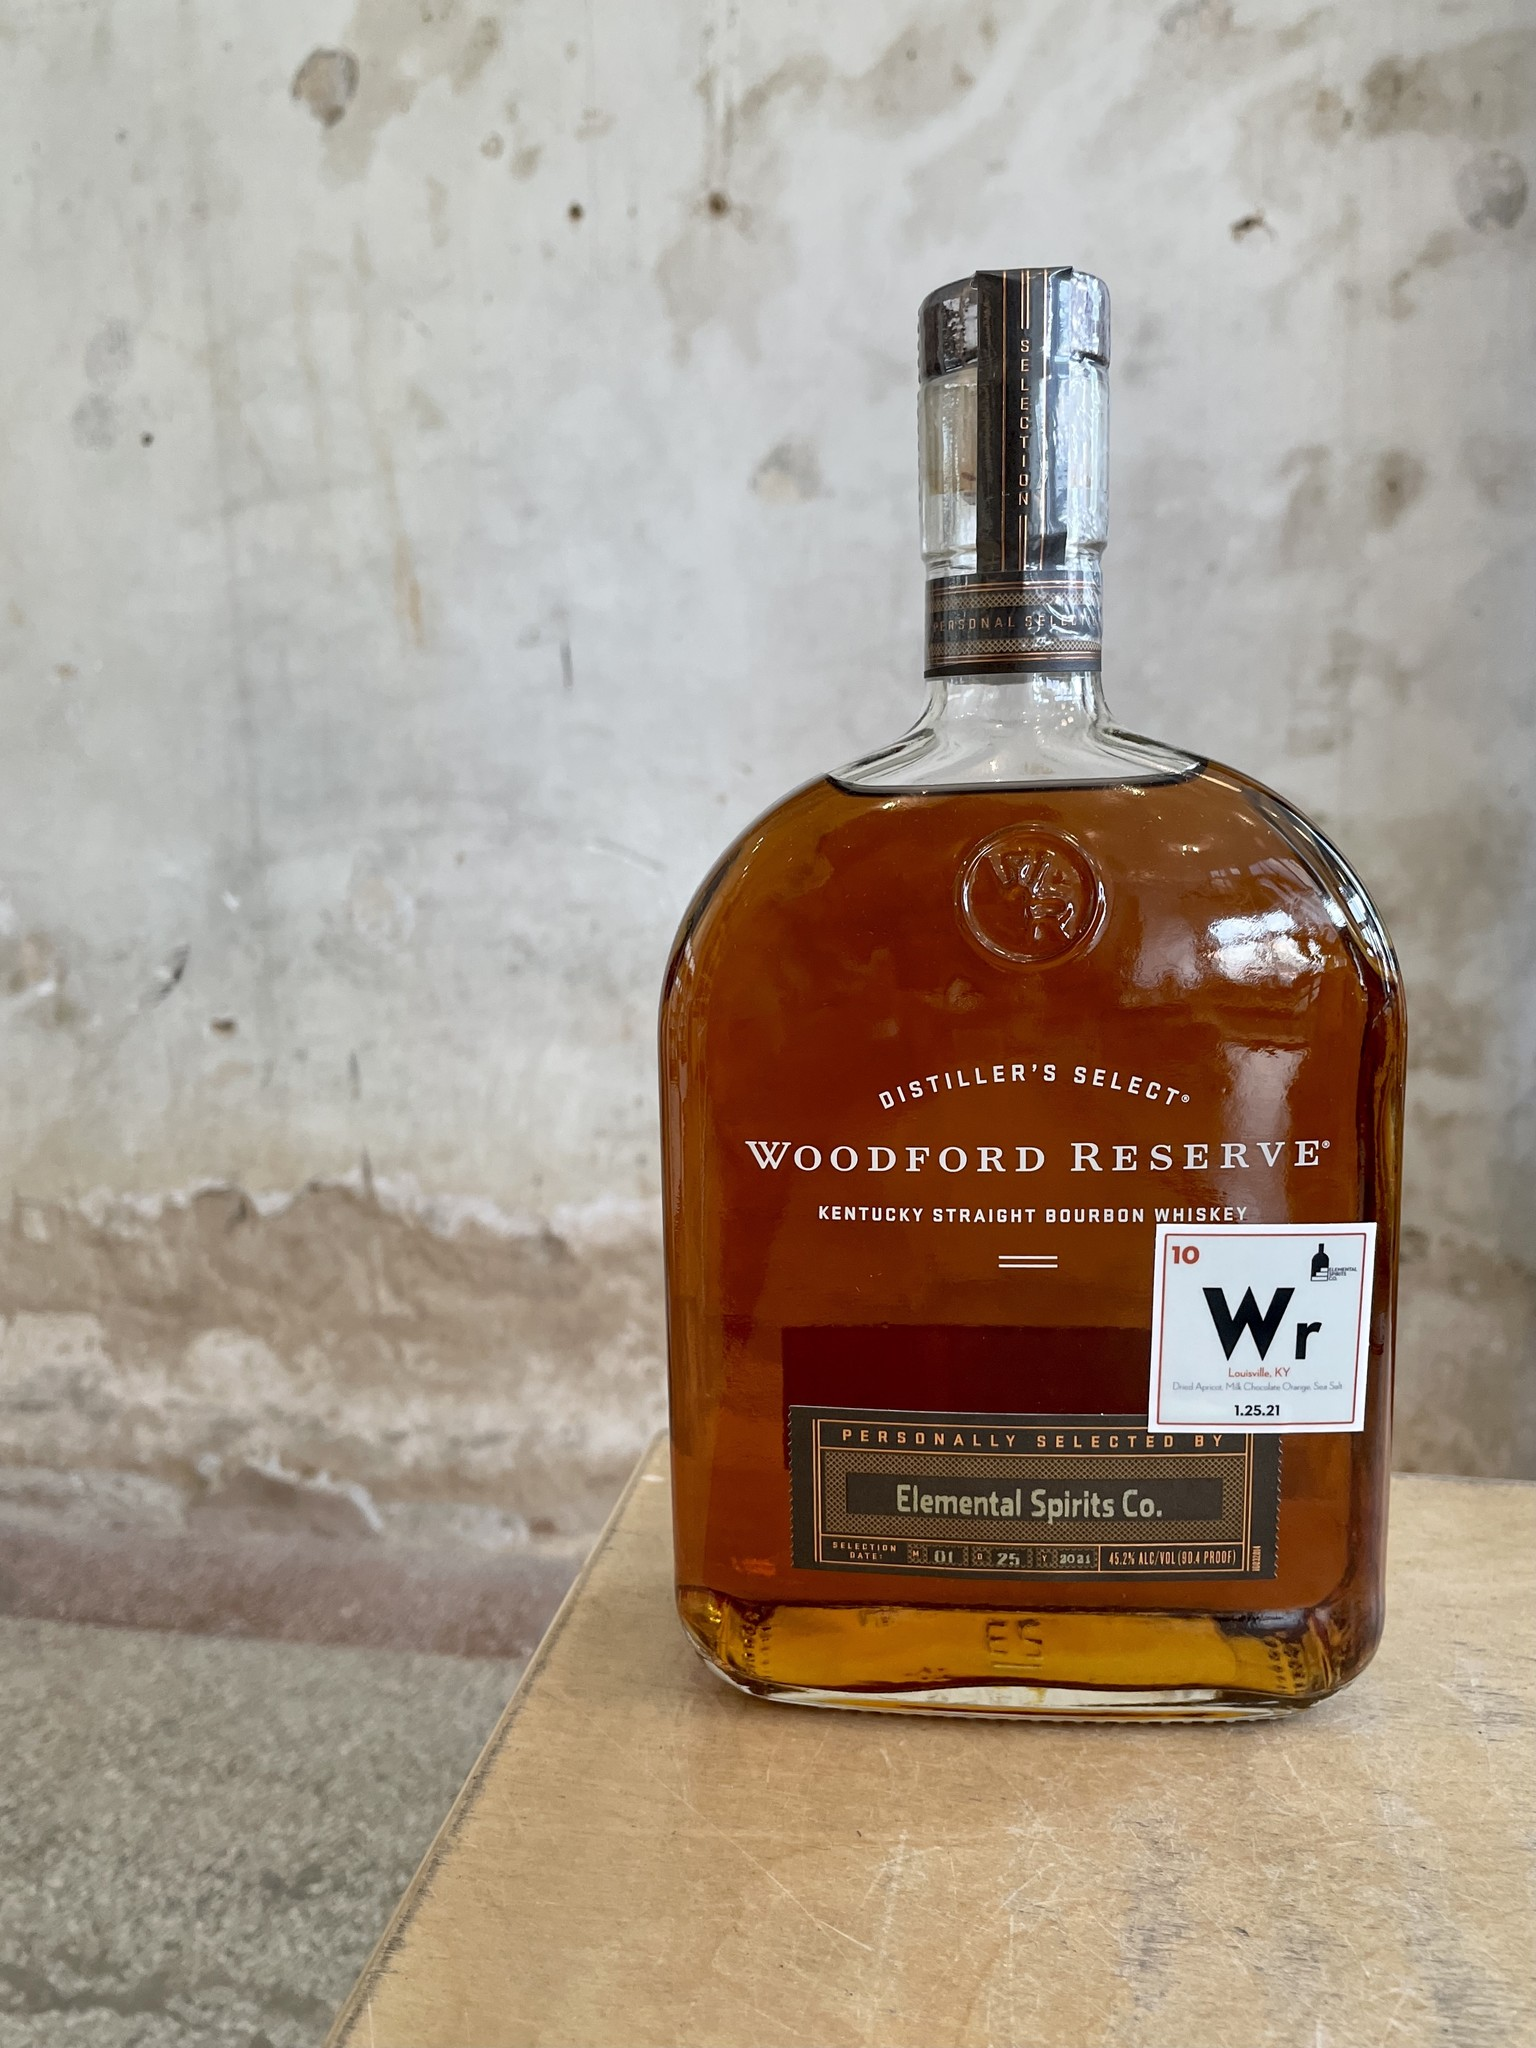 Woodford Woodford Reserve Private Blend Liter **Elemental Spirits Co. Exclusive**